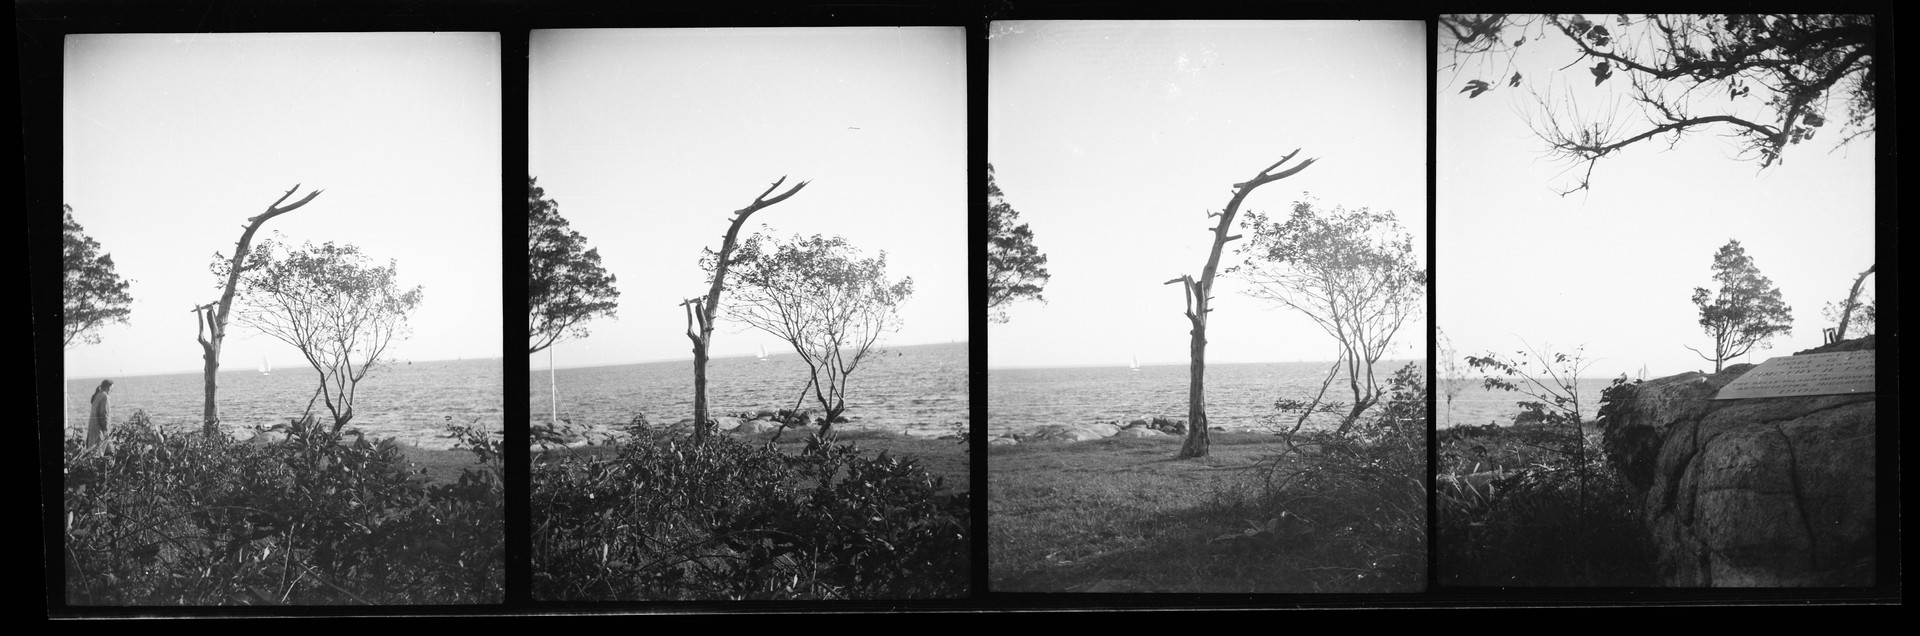 Bell Island - uncut negative strip